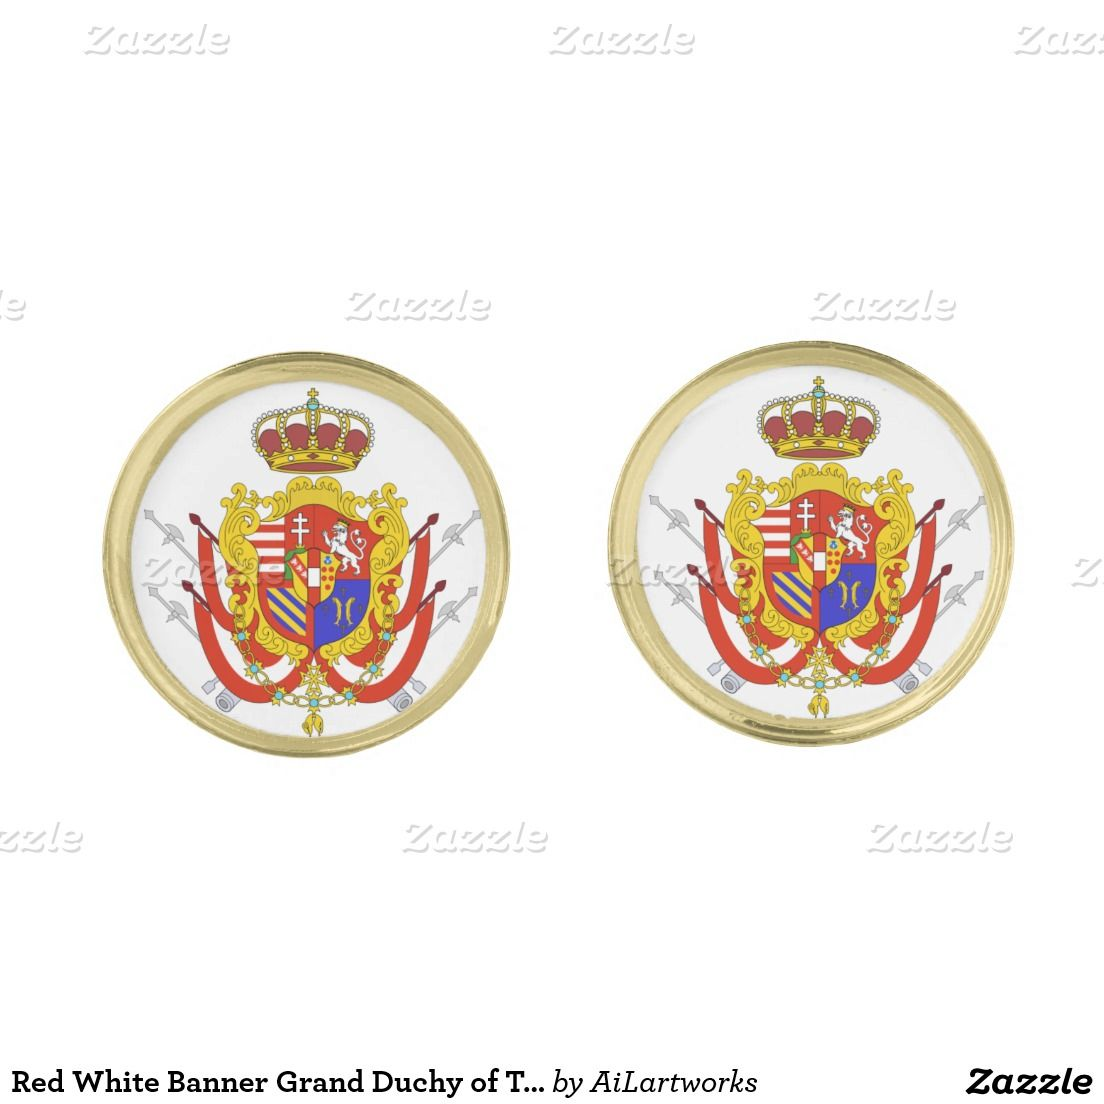 Red White Banner Grand Duchy of Tuscany Gold Finish Cufflinks